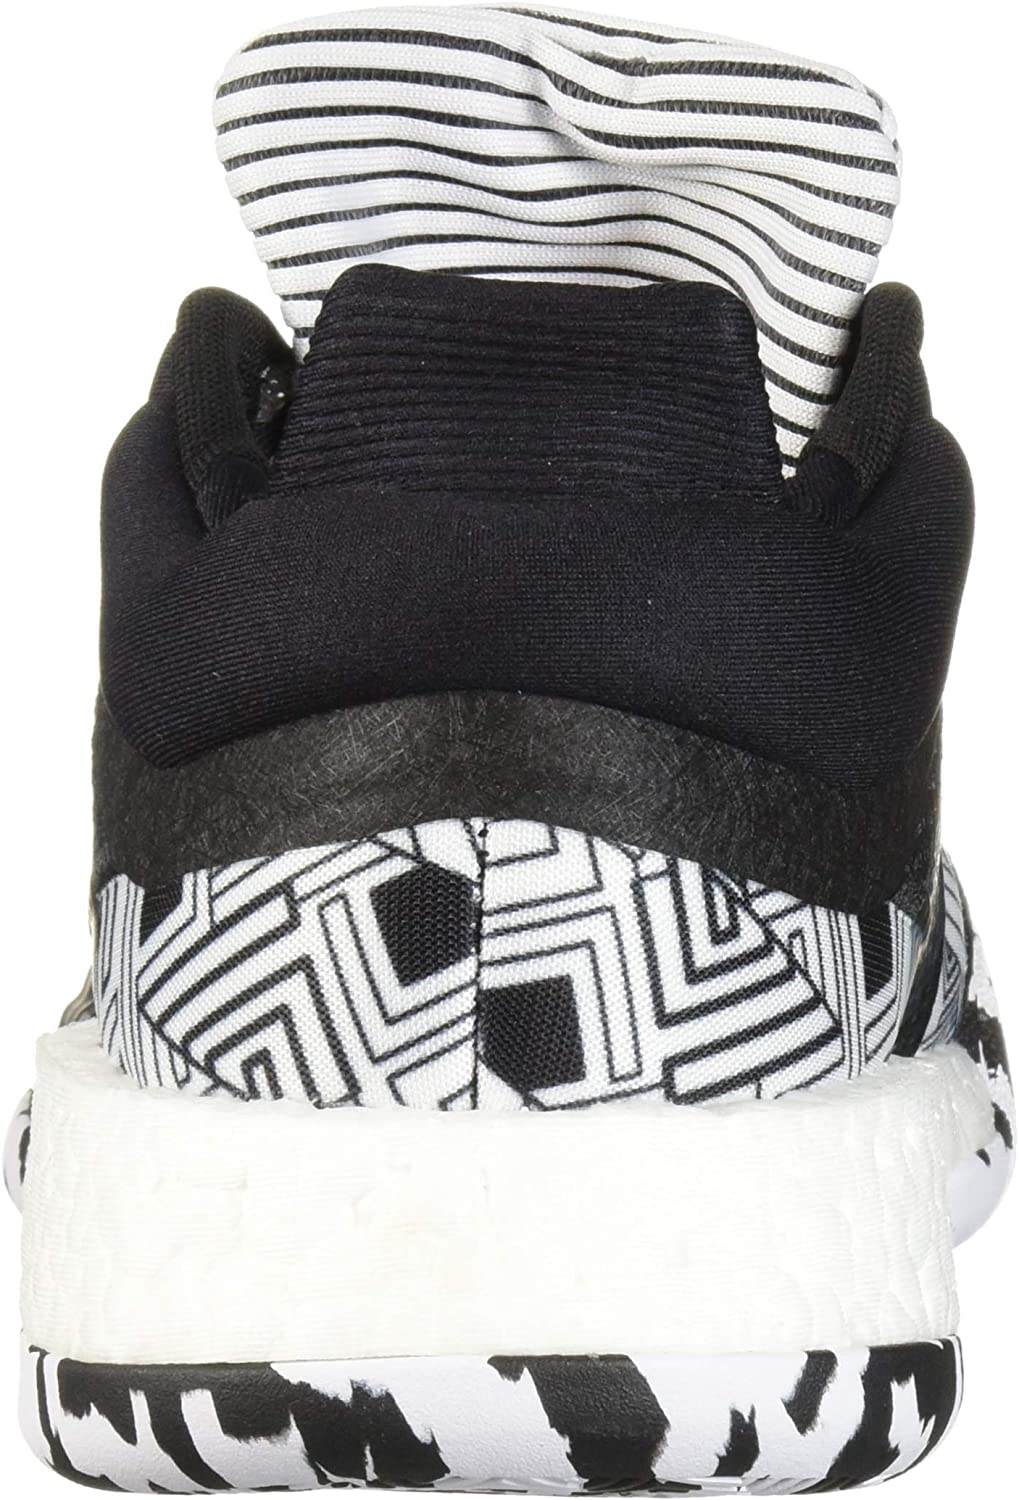 Adidas Marquee Boost Low Chaussures Basses pour Homme Noir/Blanc